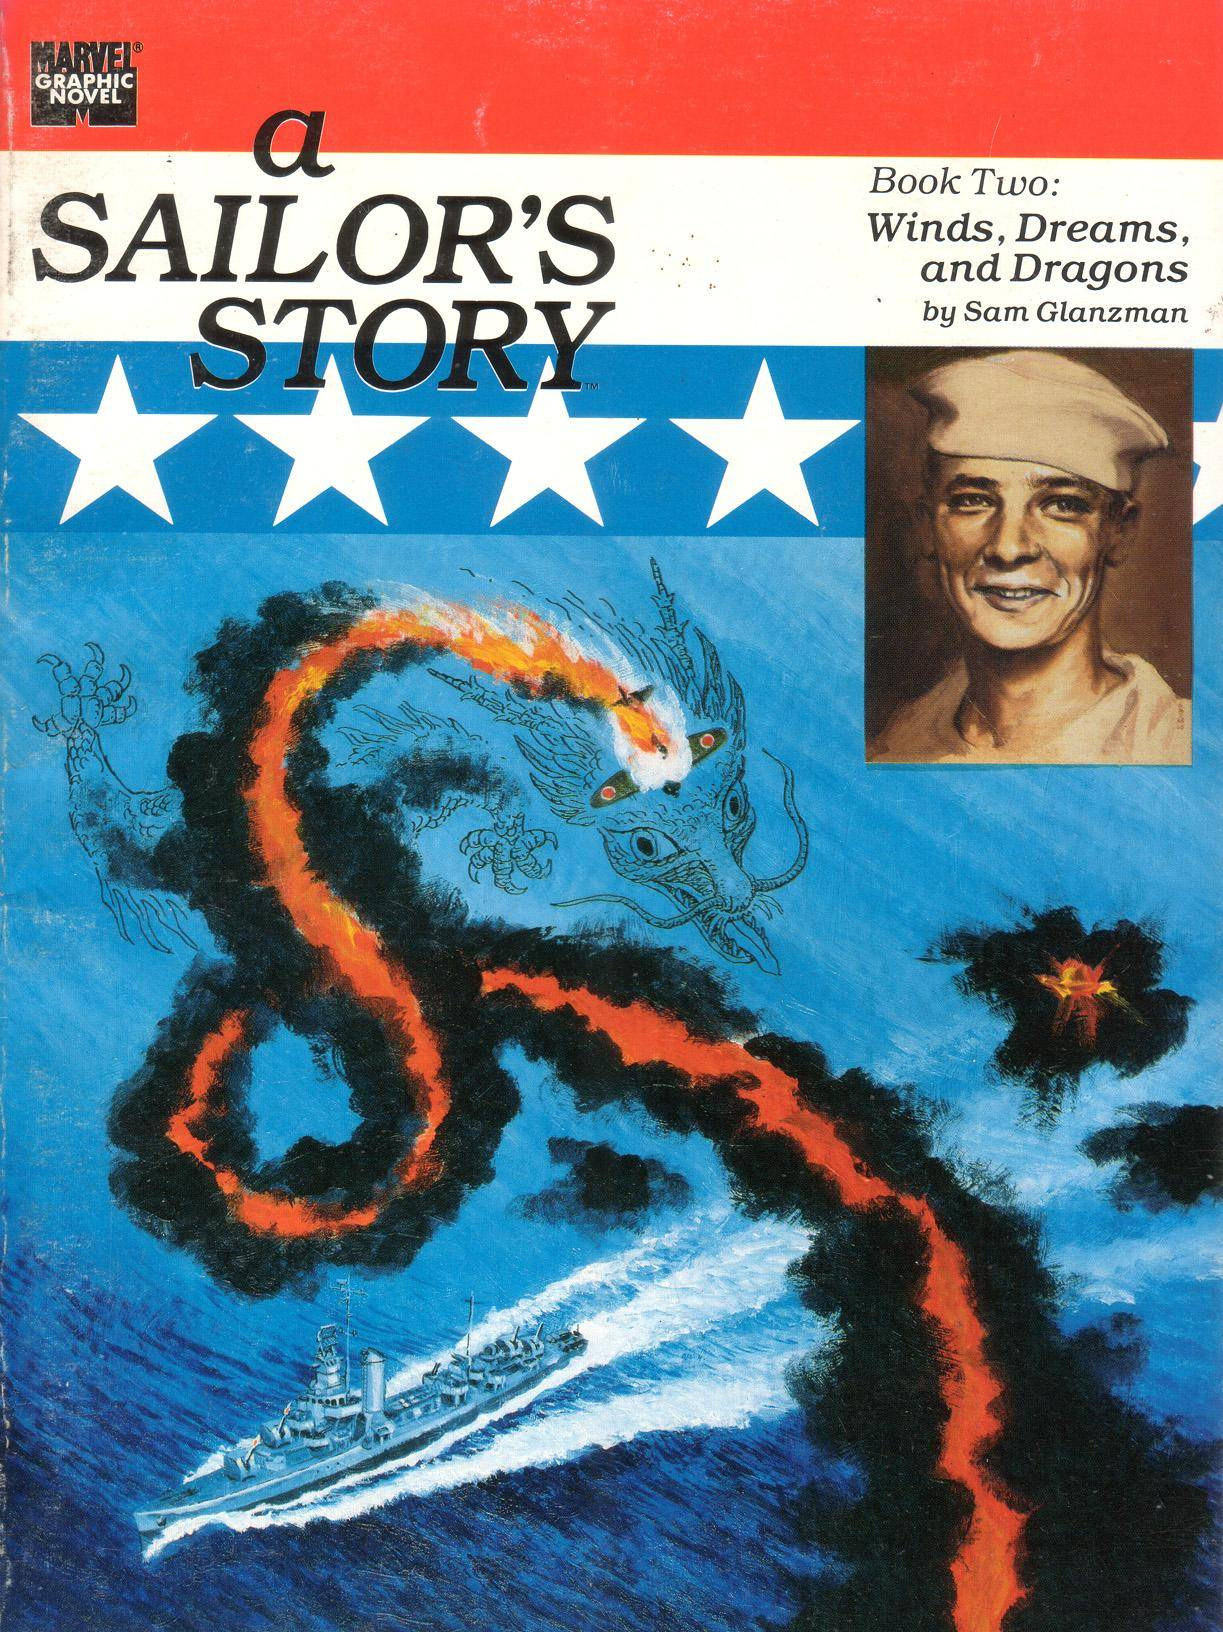 Marvel Graphic Novel 48 - A Sailors Story Book II 1989